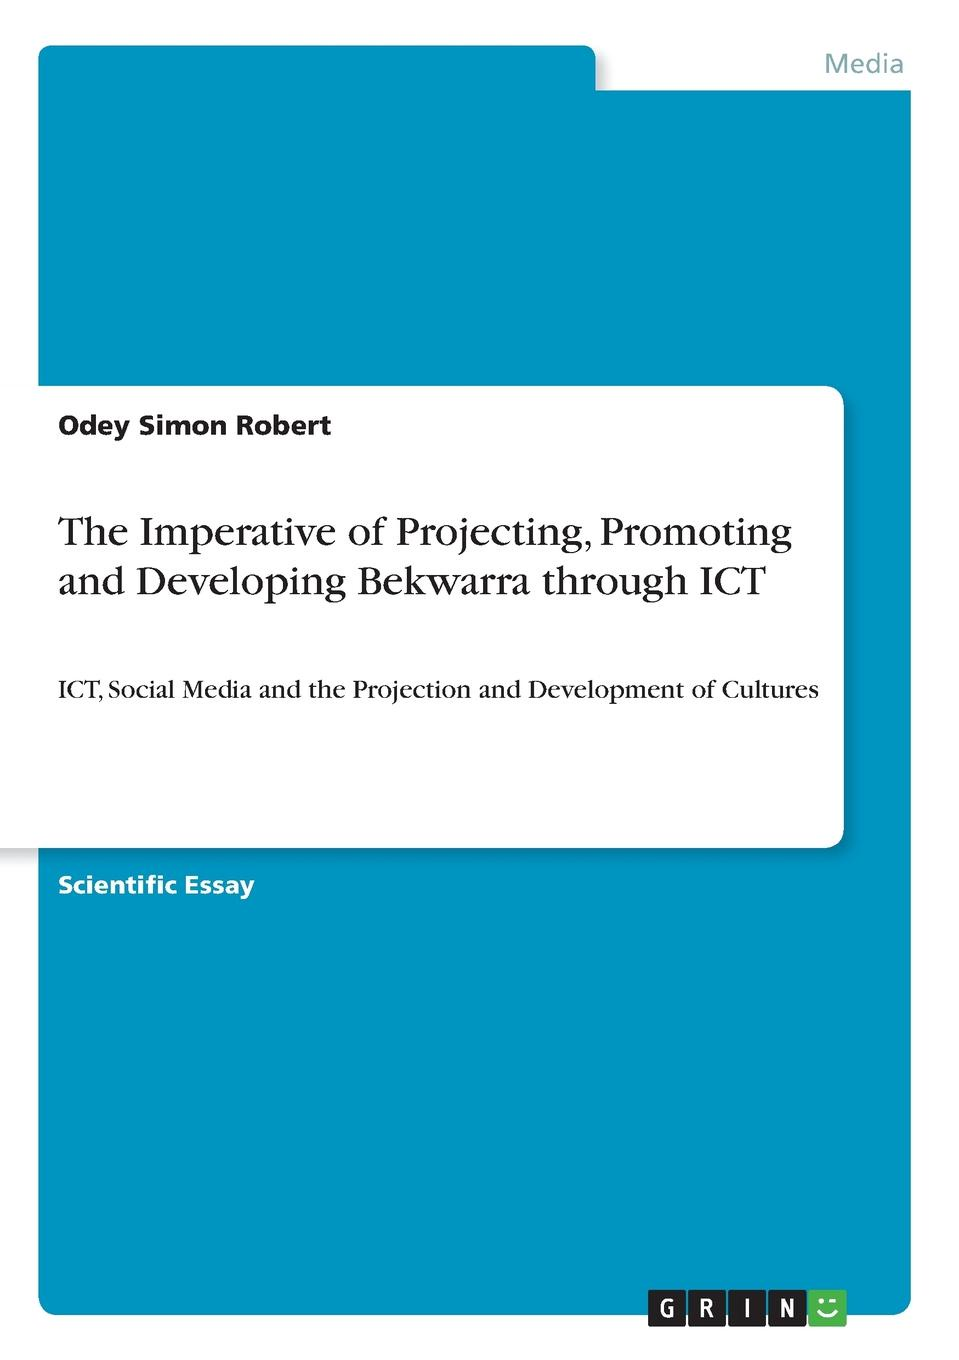 Odey Simon Robert The Imperative of Projecting, Promoting and Developing Bekwarra through ICT personal epistemology as predictor of attitudes toward ict usage